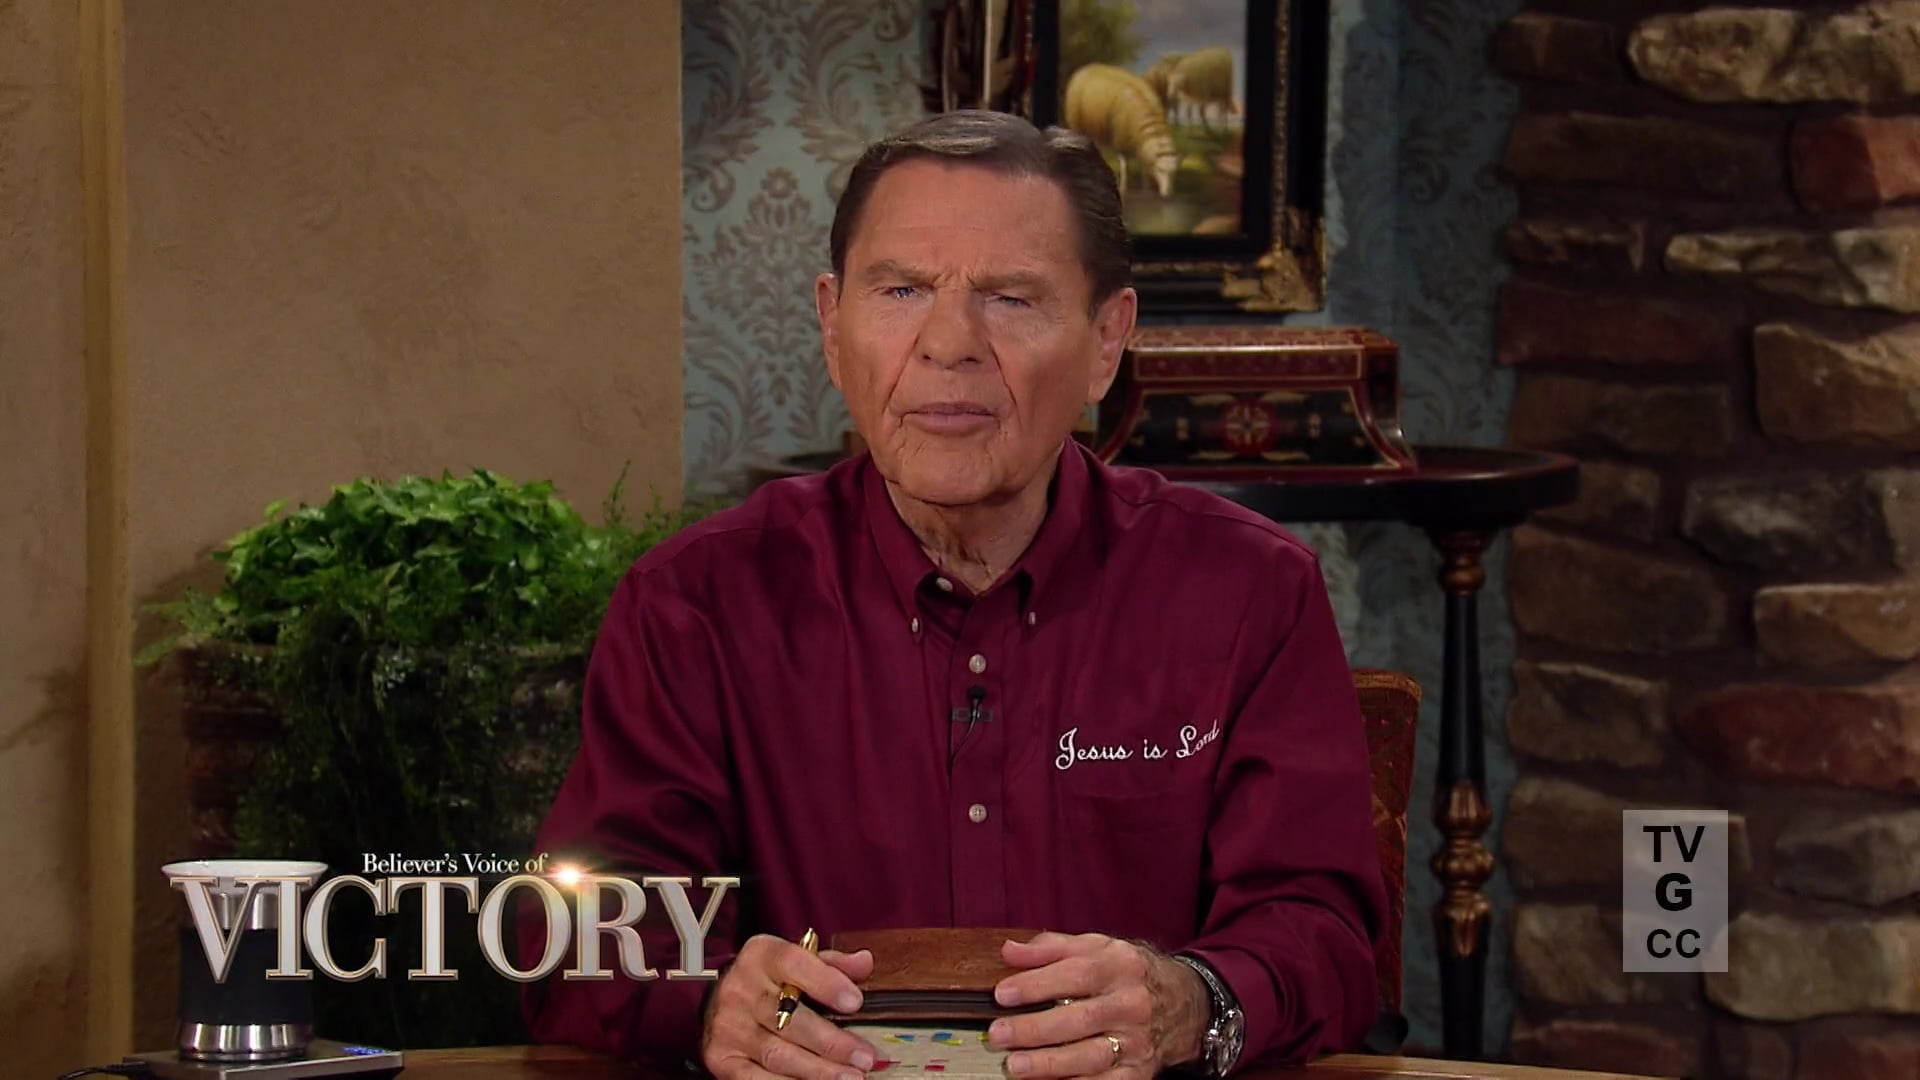 Your breakthrough is today! Watch Kenneth Copeland on Believer's Voice of Victory as he teaches you why you need to locate the scripture that covers your situation and take hold of it TODAY. Faith doesn't hesitate or slow down—faith is today!